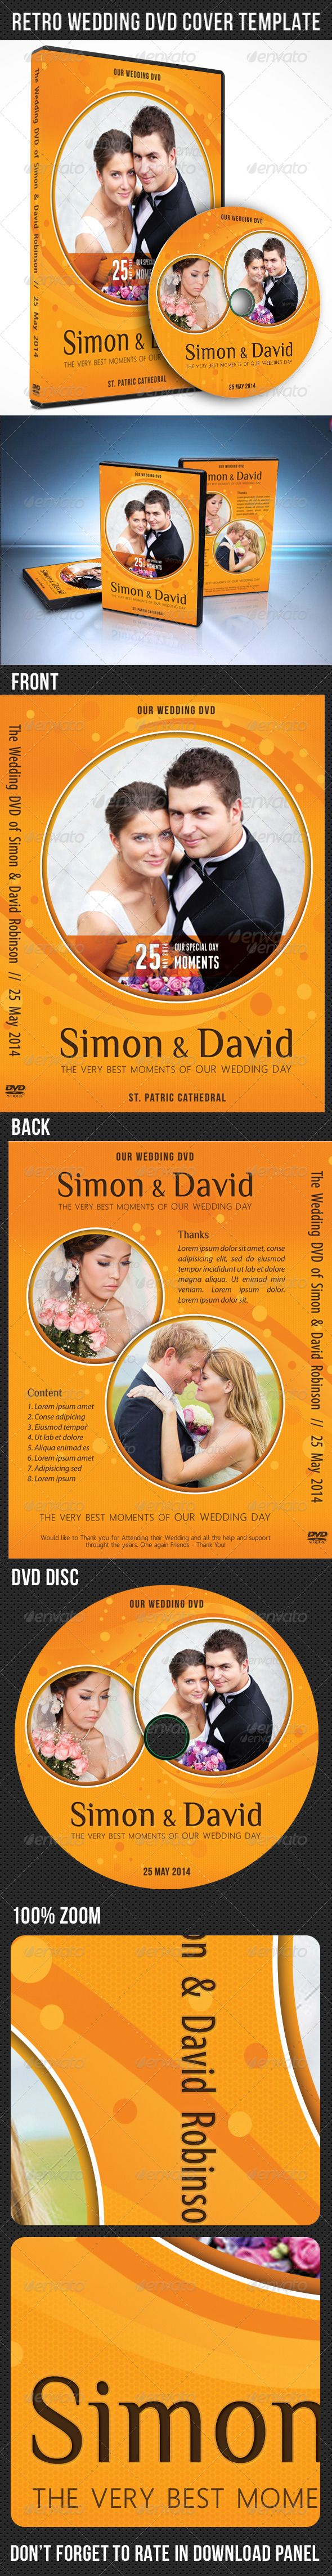 retro wedding dvd cover template wedding dvd cover and disc label